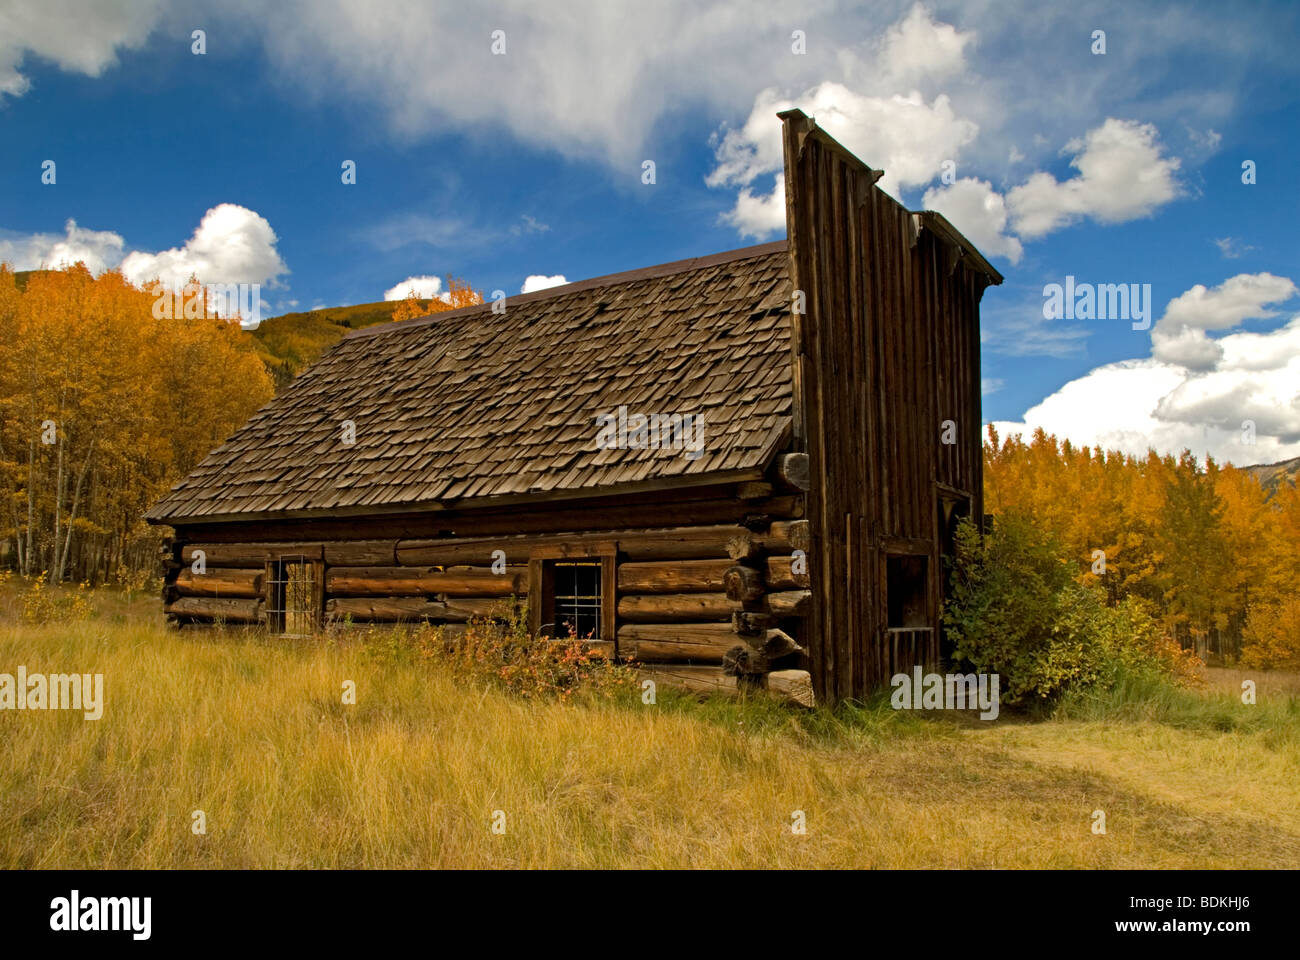 Old cabin structure in autumn, Ashcroft ghost town, Colorado US. - Stock Image